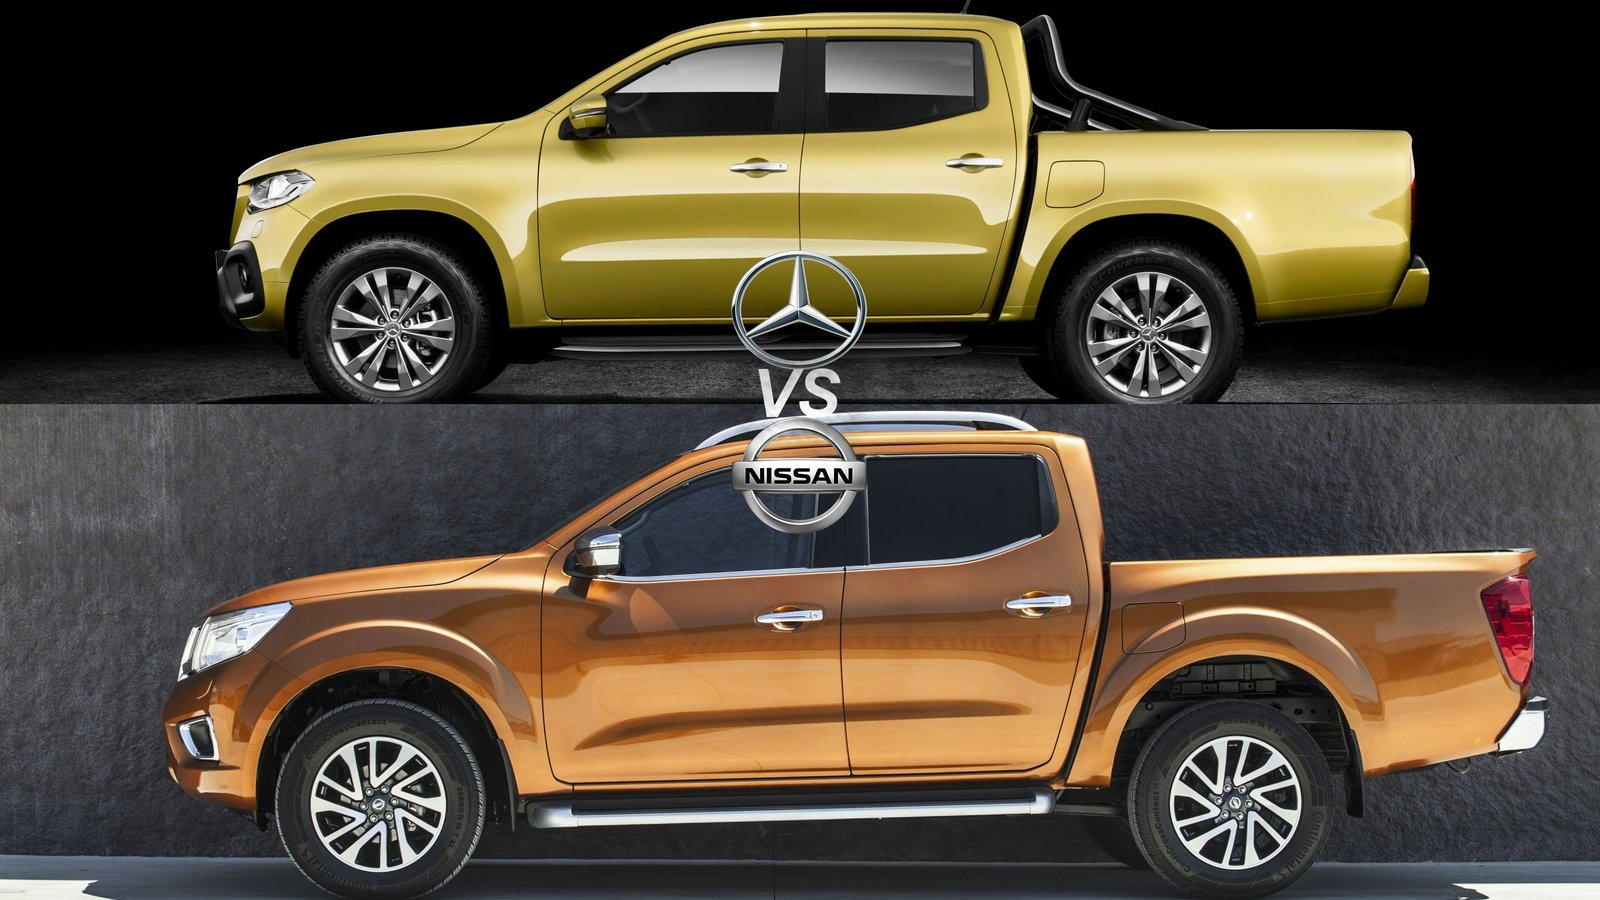 Mb X? S? Mercedes Benz X Class Vs Nissan Navara Top Speed